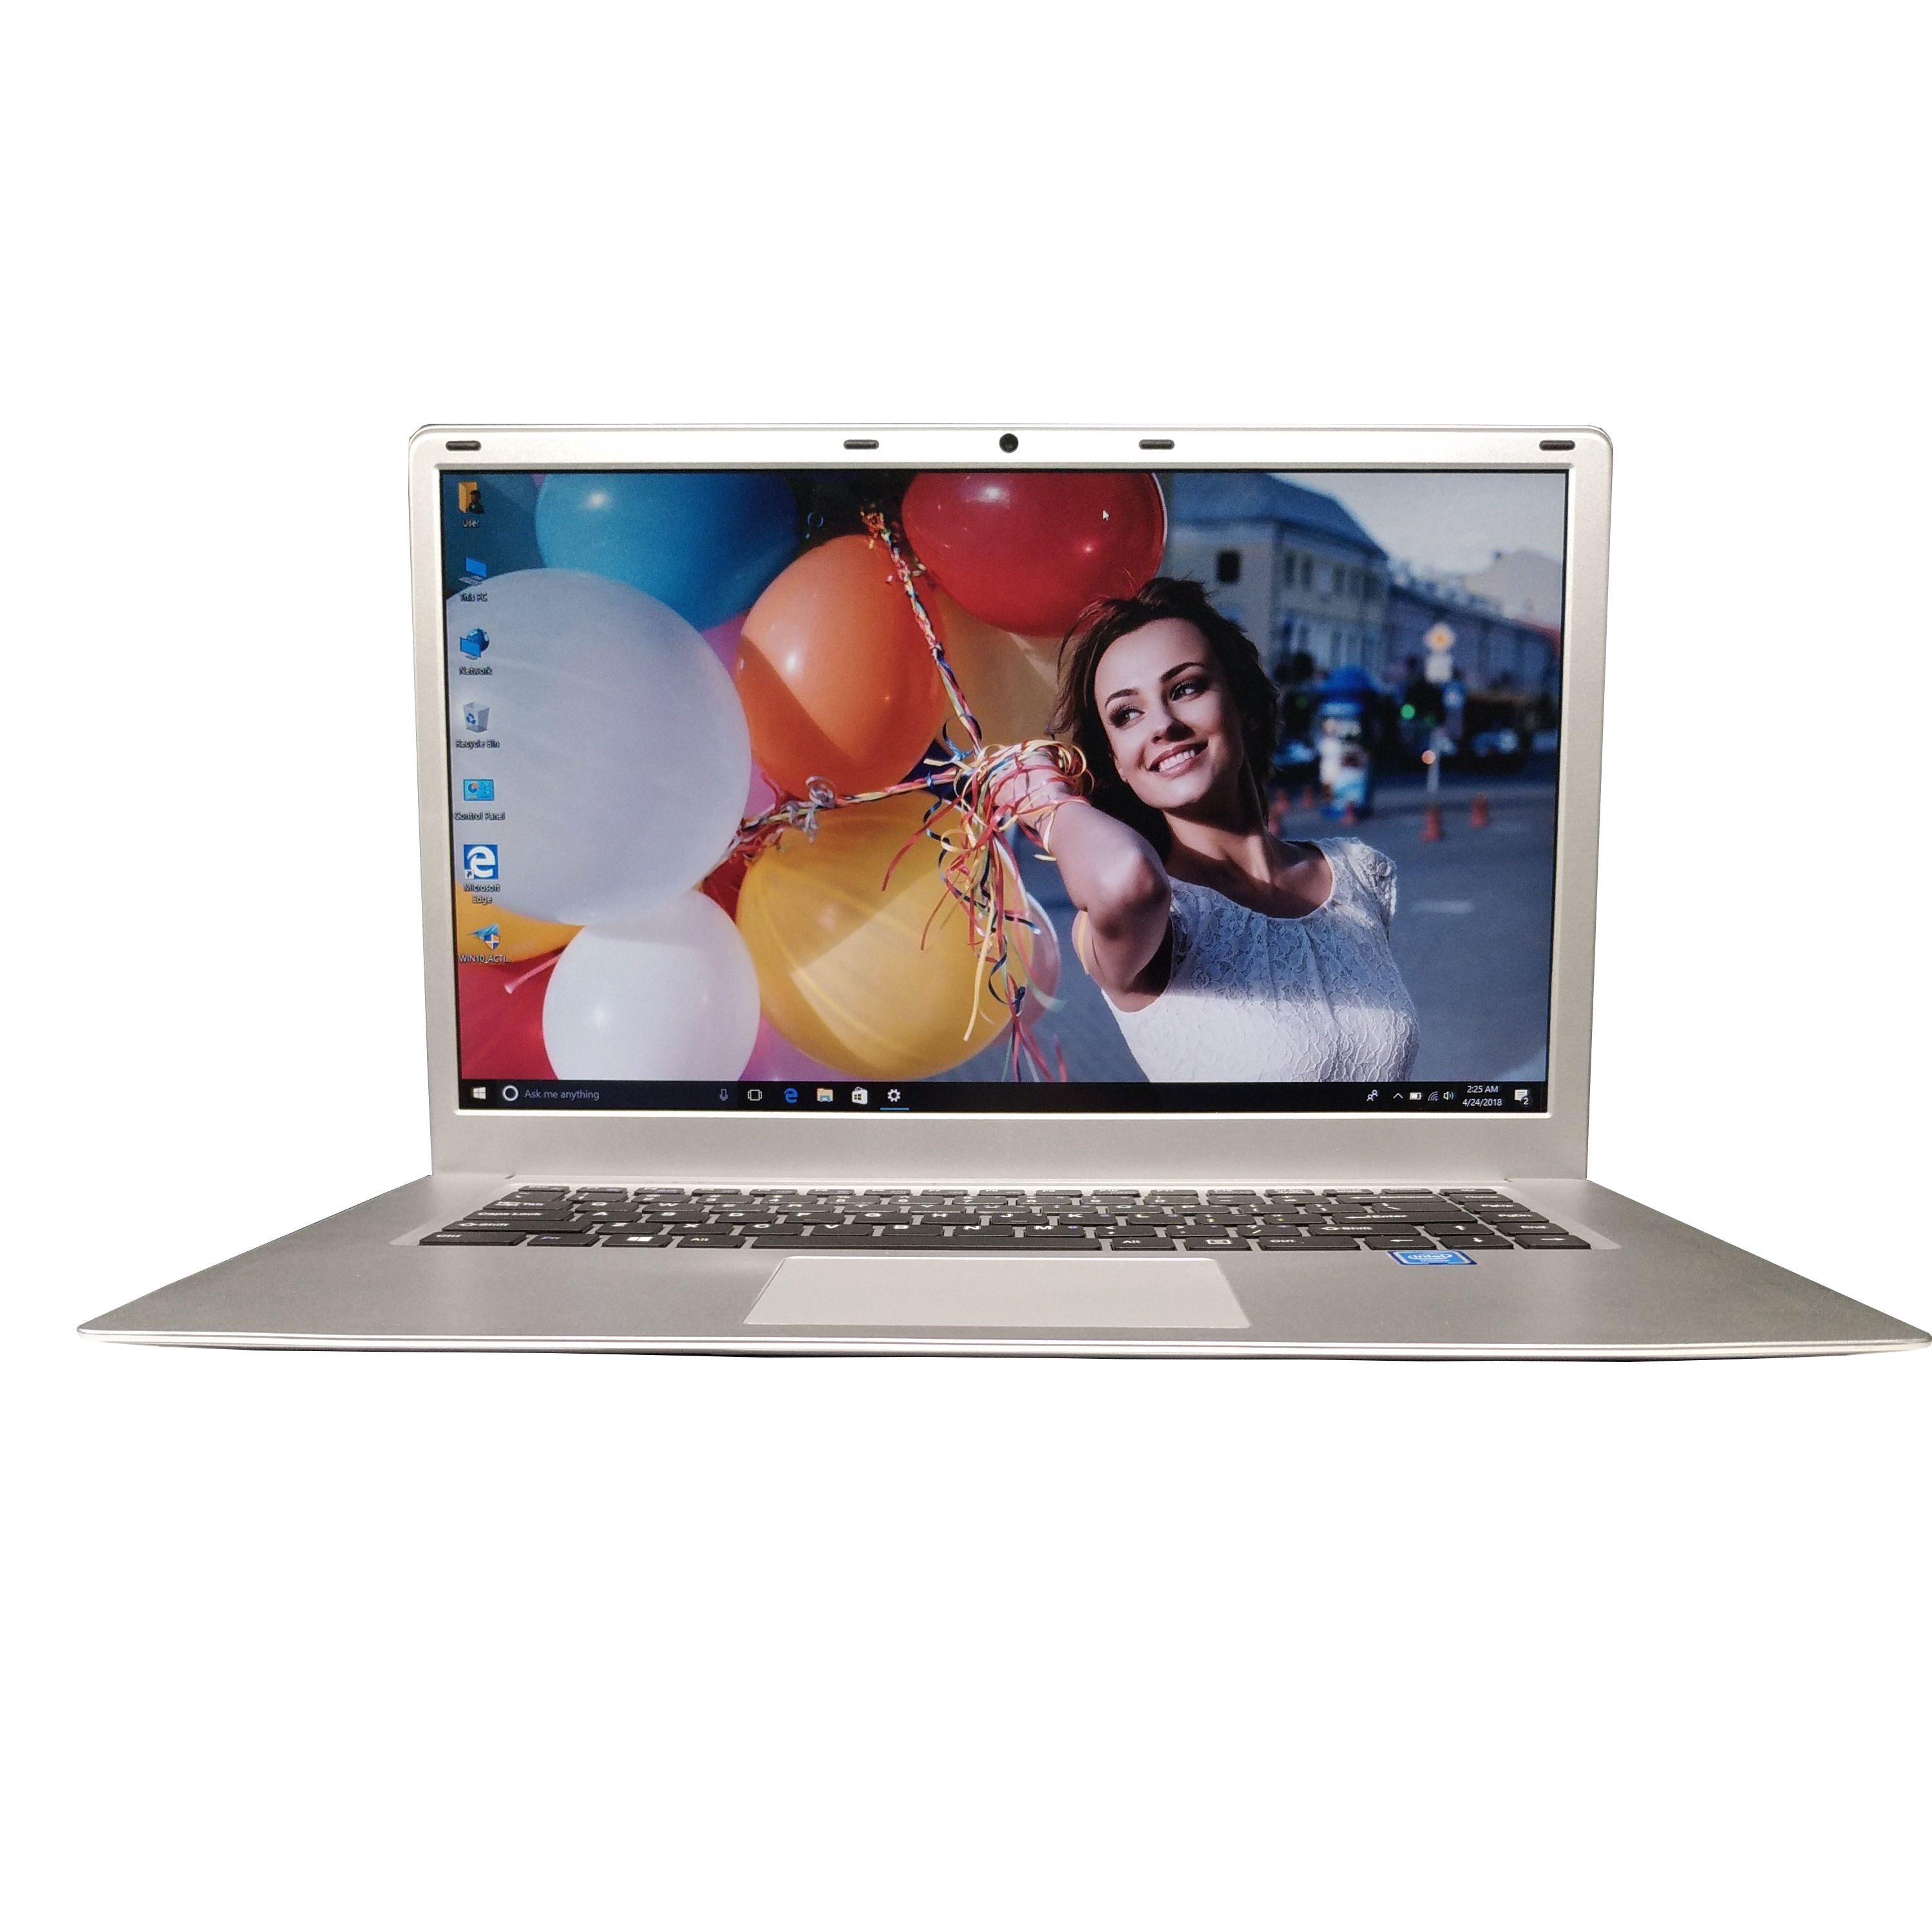 larvigo Brand win 10 system 8G ram 60GB 120gb 240gb ssd 15.6 inch <strong>laptop</strong> built in bluetooth camera type c OEM <strong>laptop</strong>